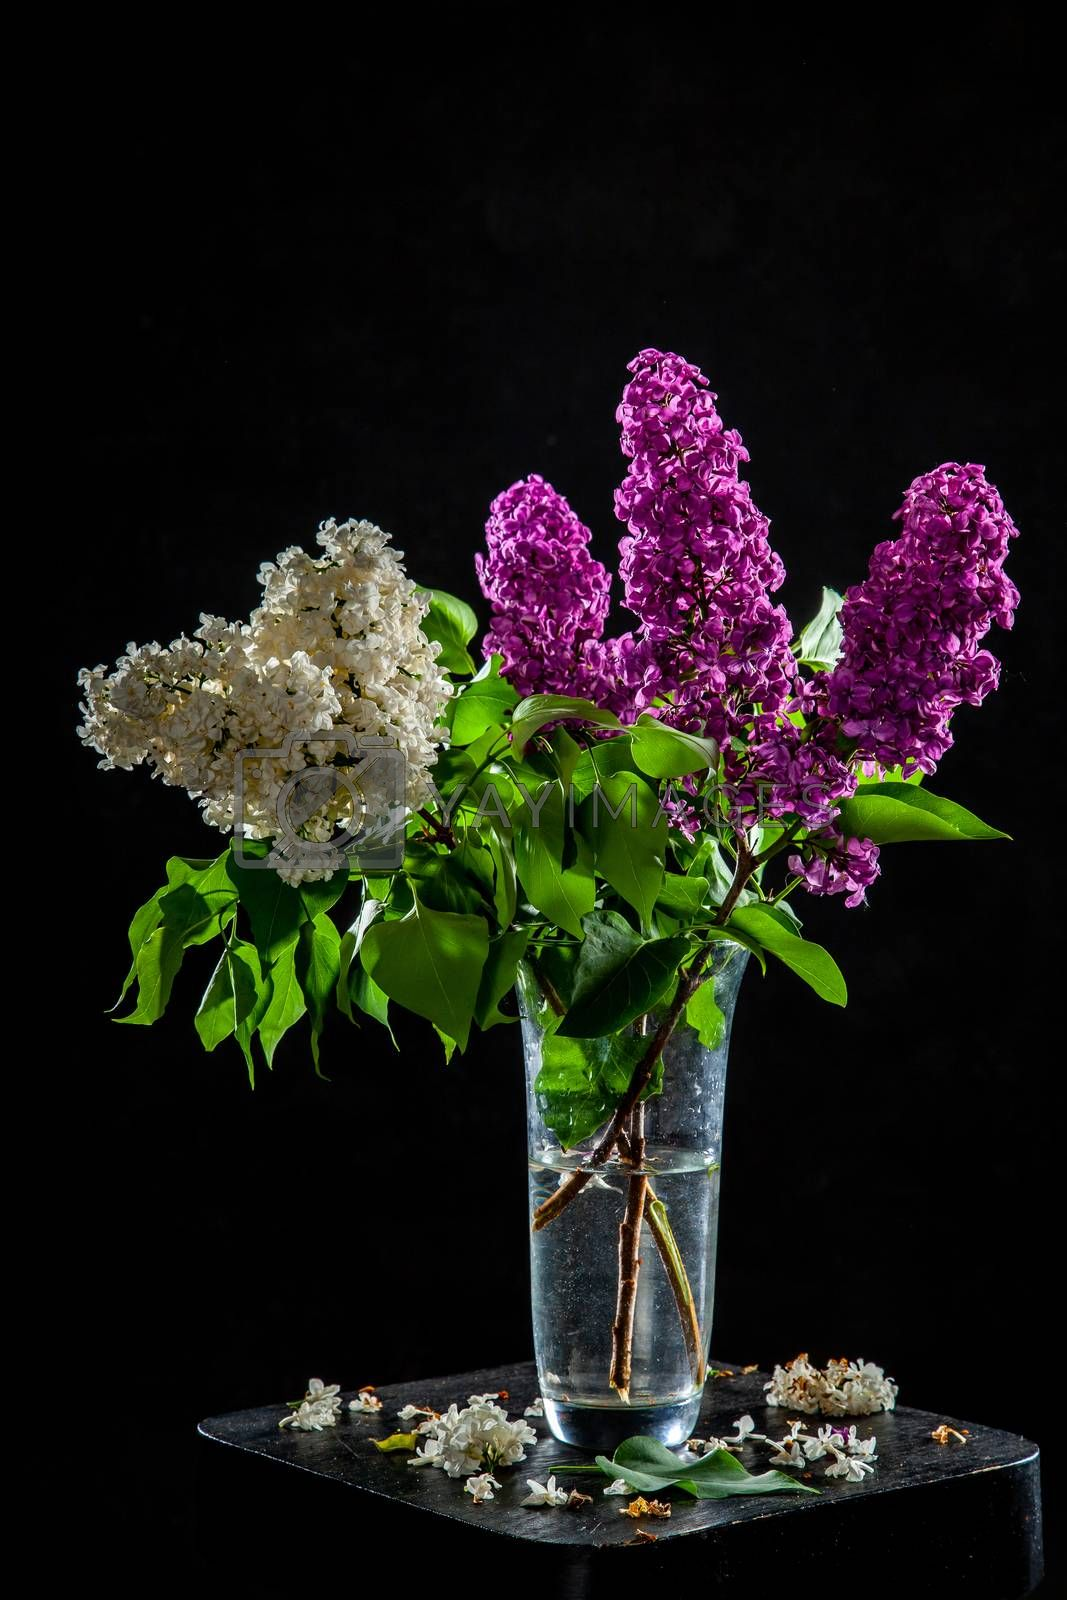 Branches of white and purple  lilac in glass vase on black background. Spring branch of blooming lilac on the table with black background. Fallen lilac flowers on the table.